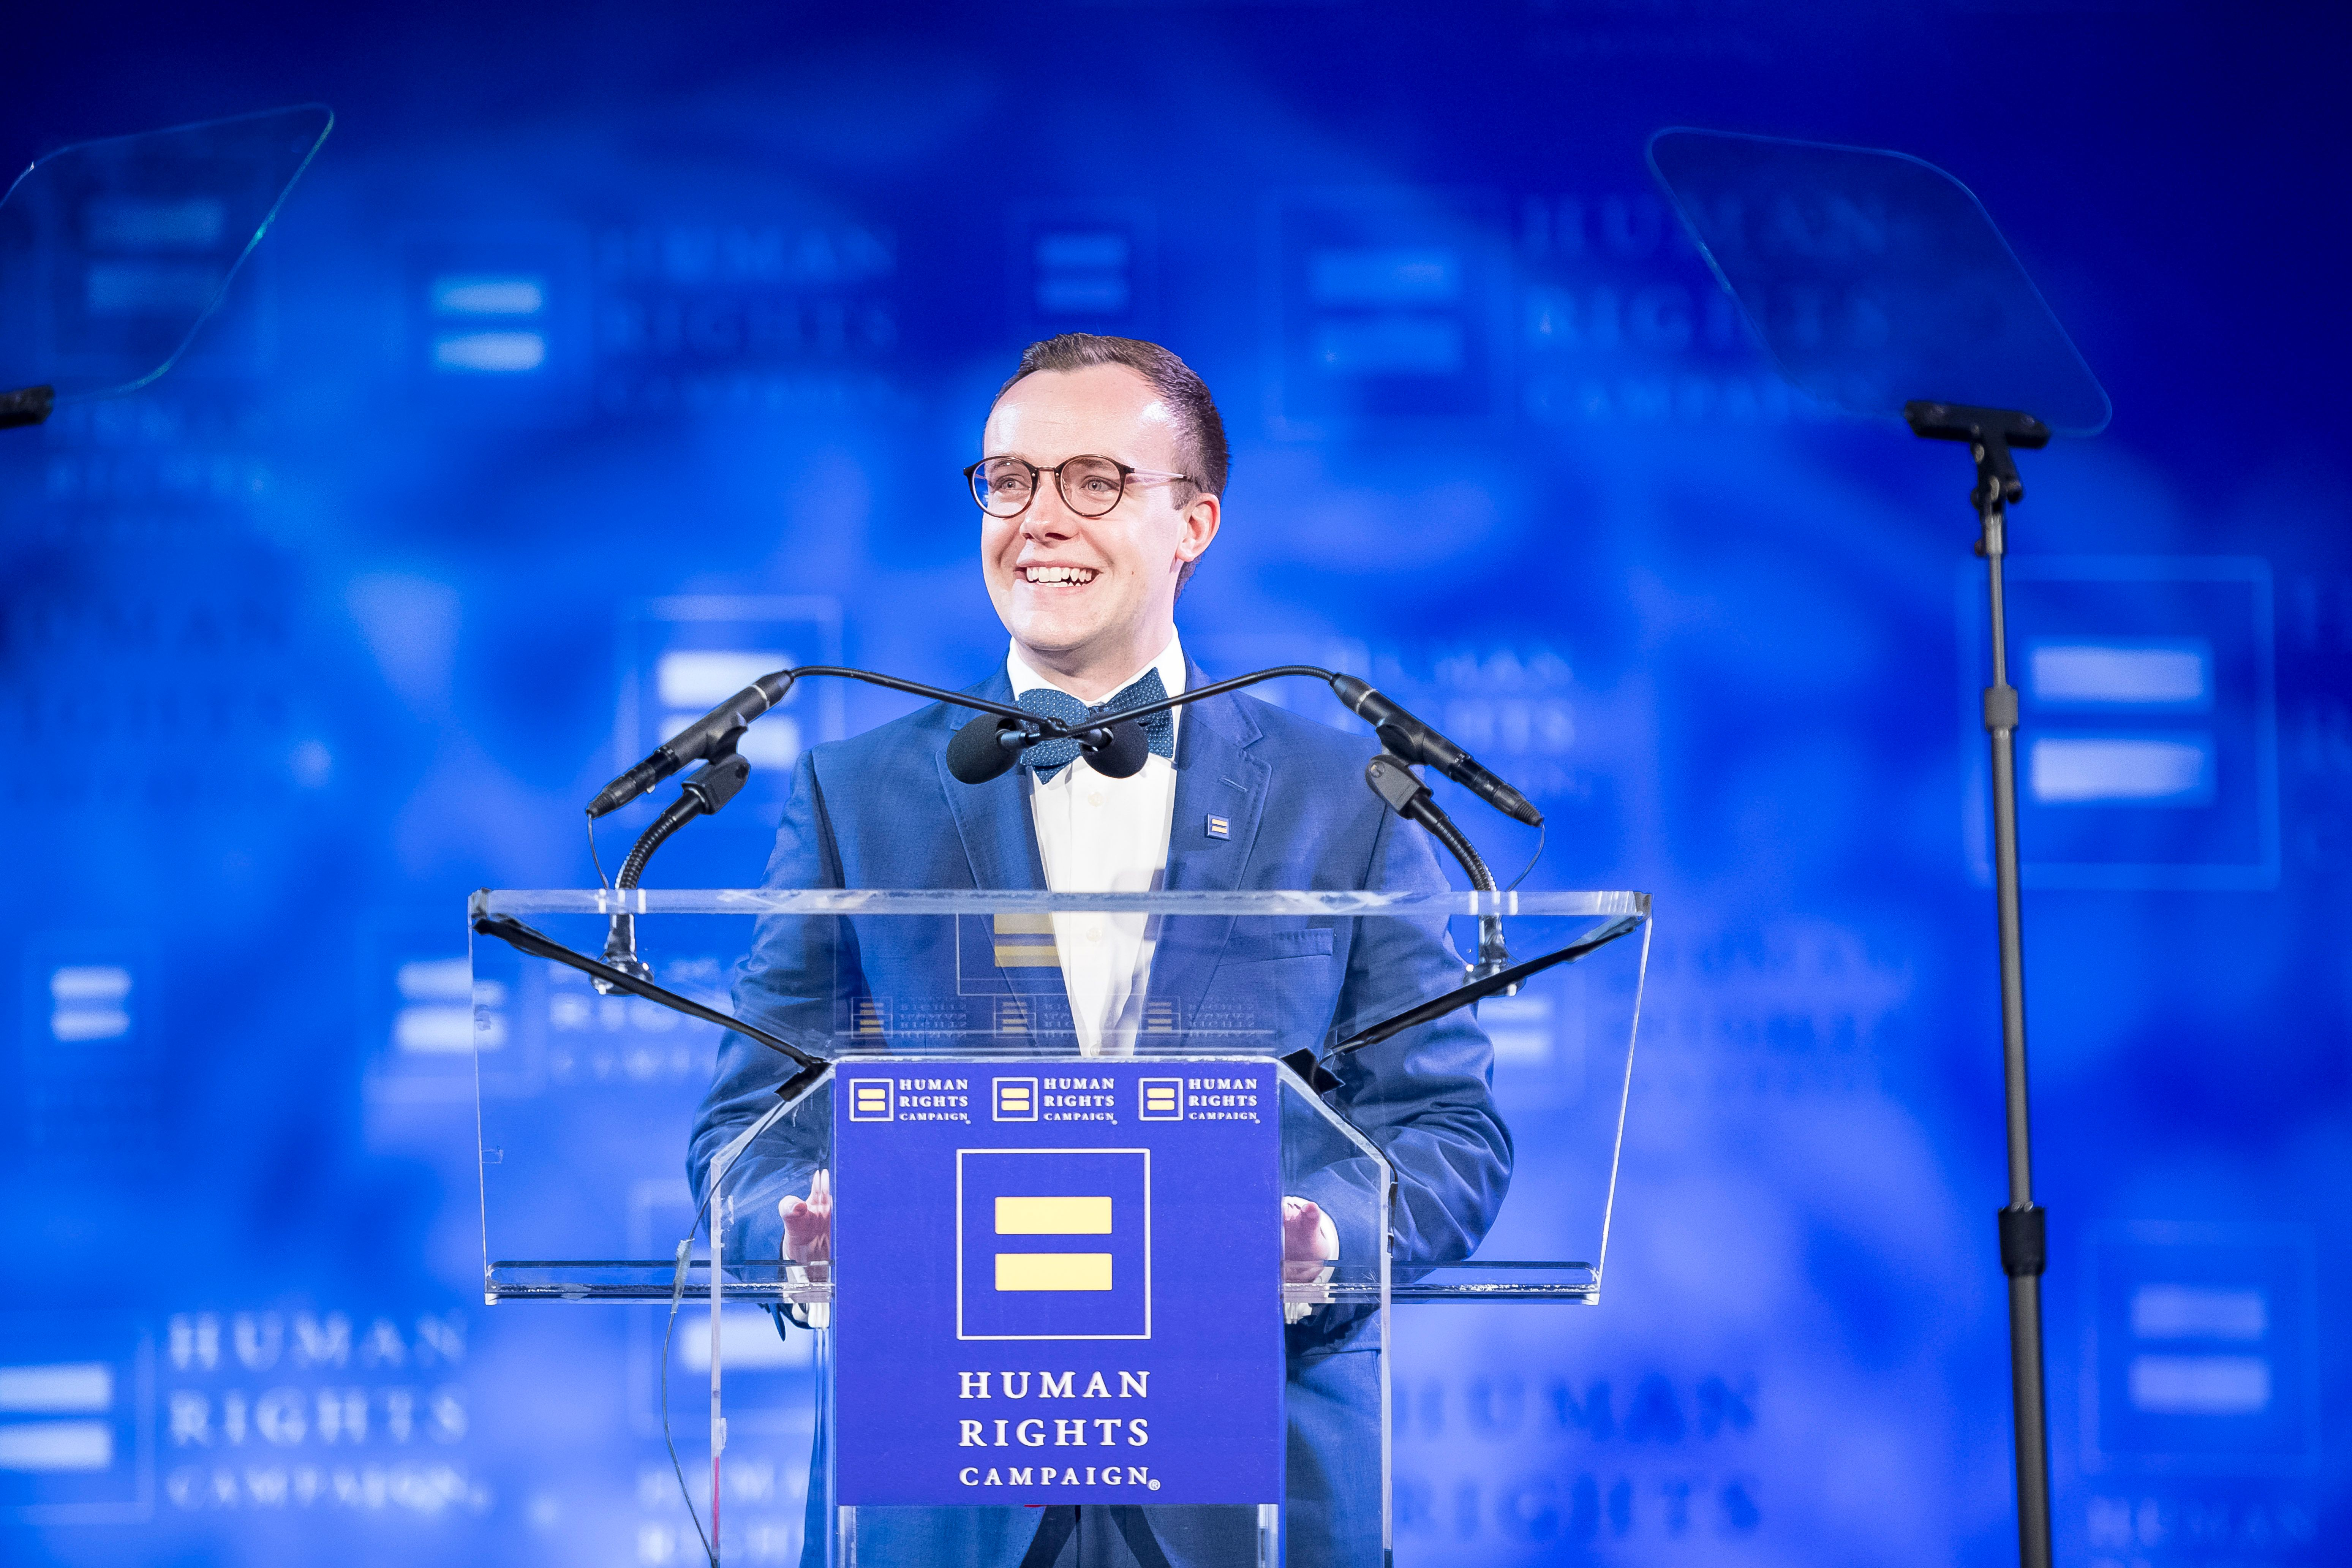 IMAGE DISTRIBUTED FOR HUMAN RIGHTS CAMPAIGN - Chasten Buttigieg speaks at the Human Rights Campaign annual dinner on Saturday, April 6, 2019 in Houston. (Anthony Rathbun/AP Images for Human Rights Campaign)